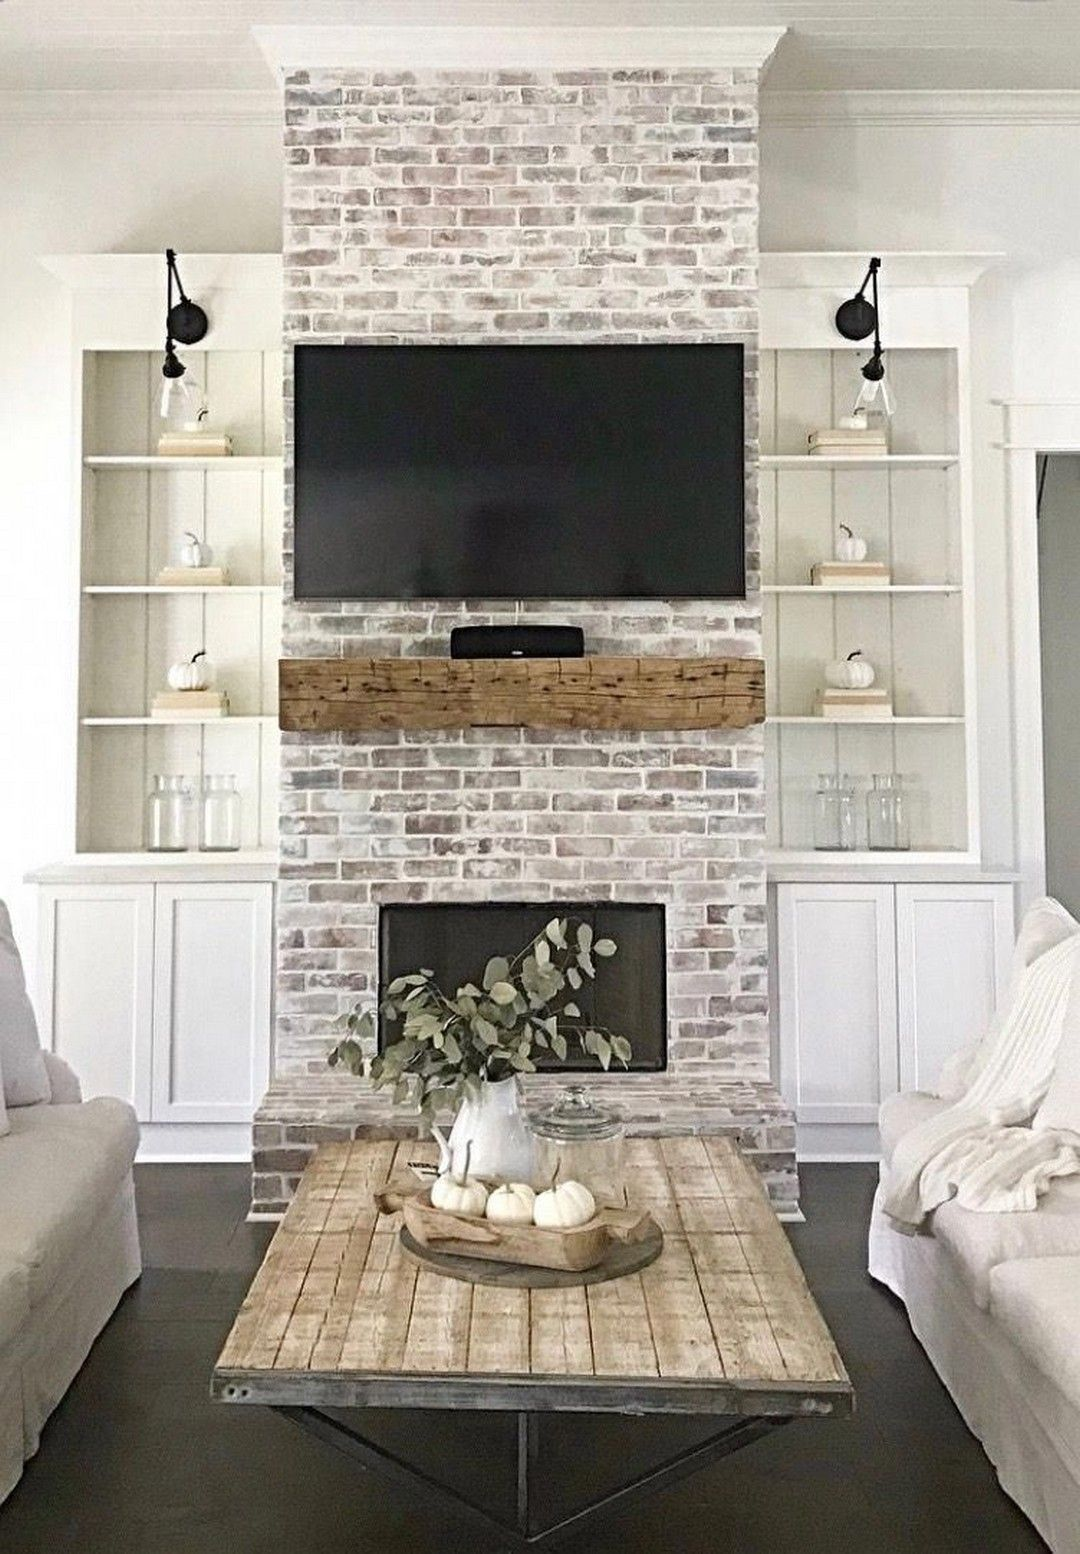 81 Awesome Farmhouse Fireplace Design Ideas To Beautify Your Living Room #whitebrickfireplace